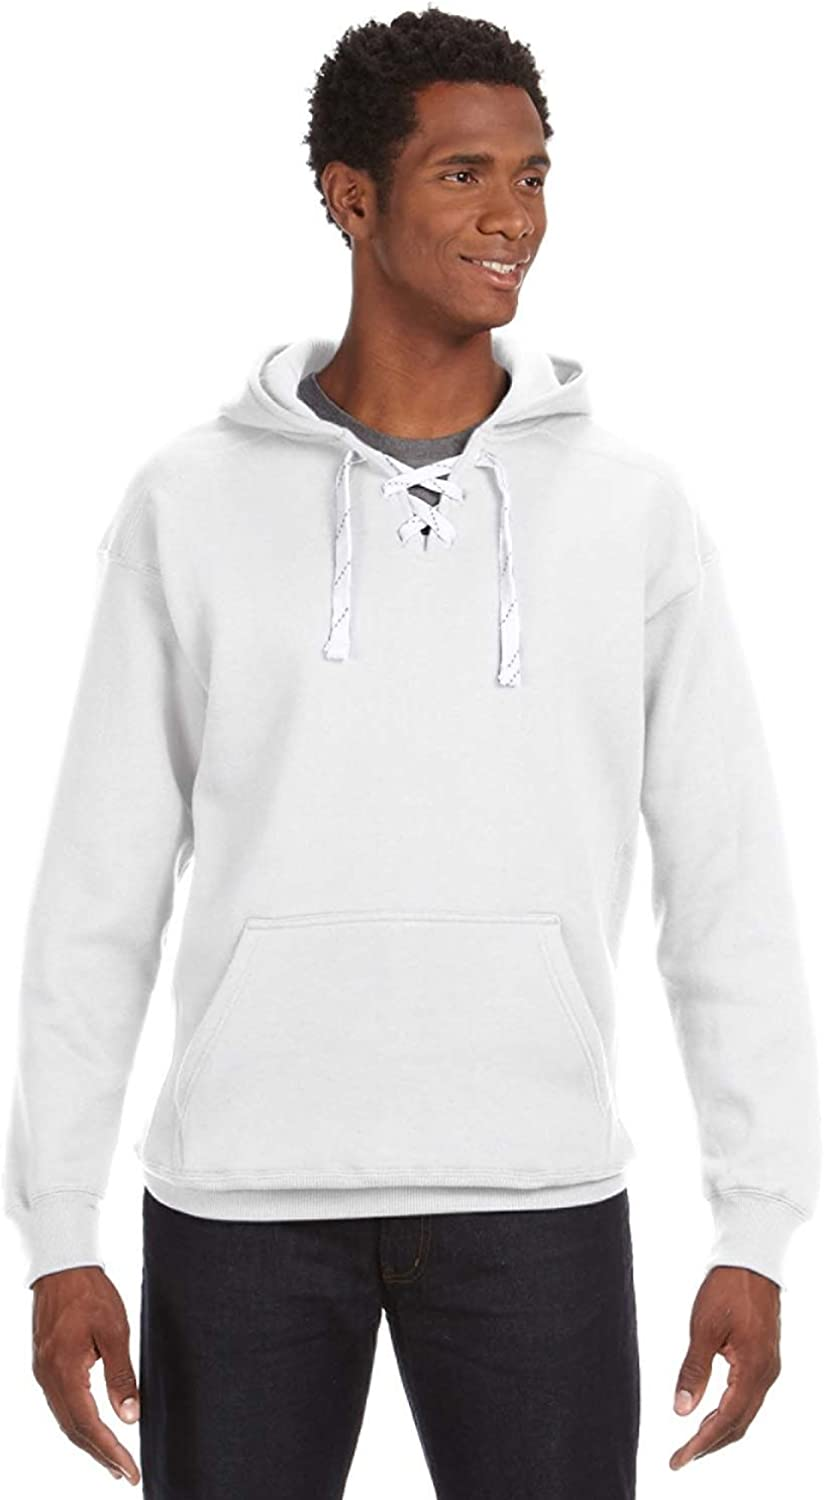 J. America Adult Now on sale Sport Sweatshirt Max 73% OFF Lace Hooded